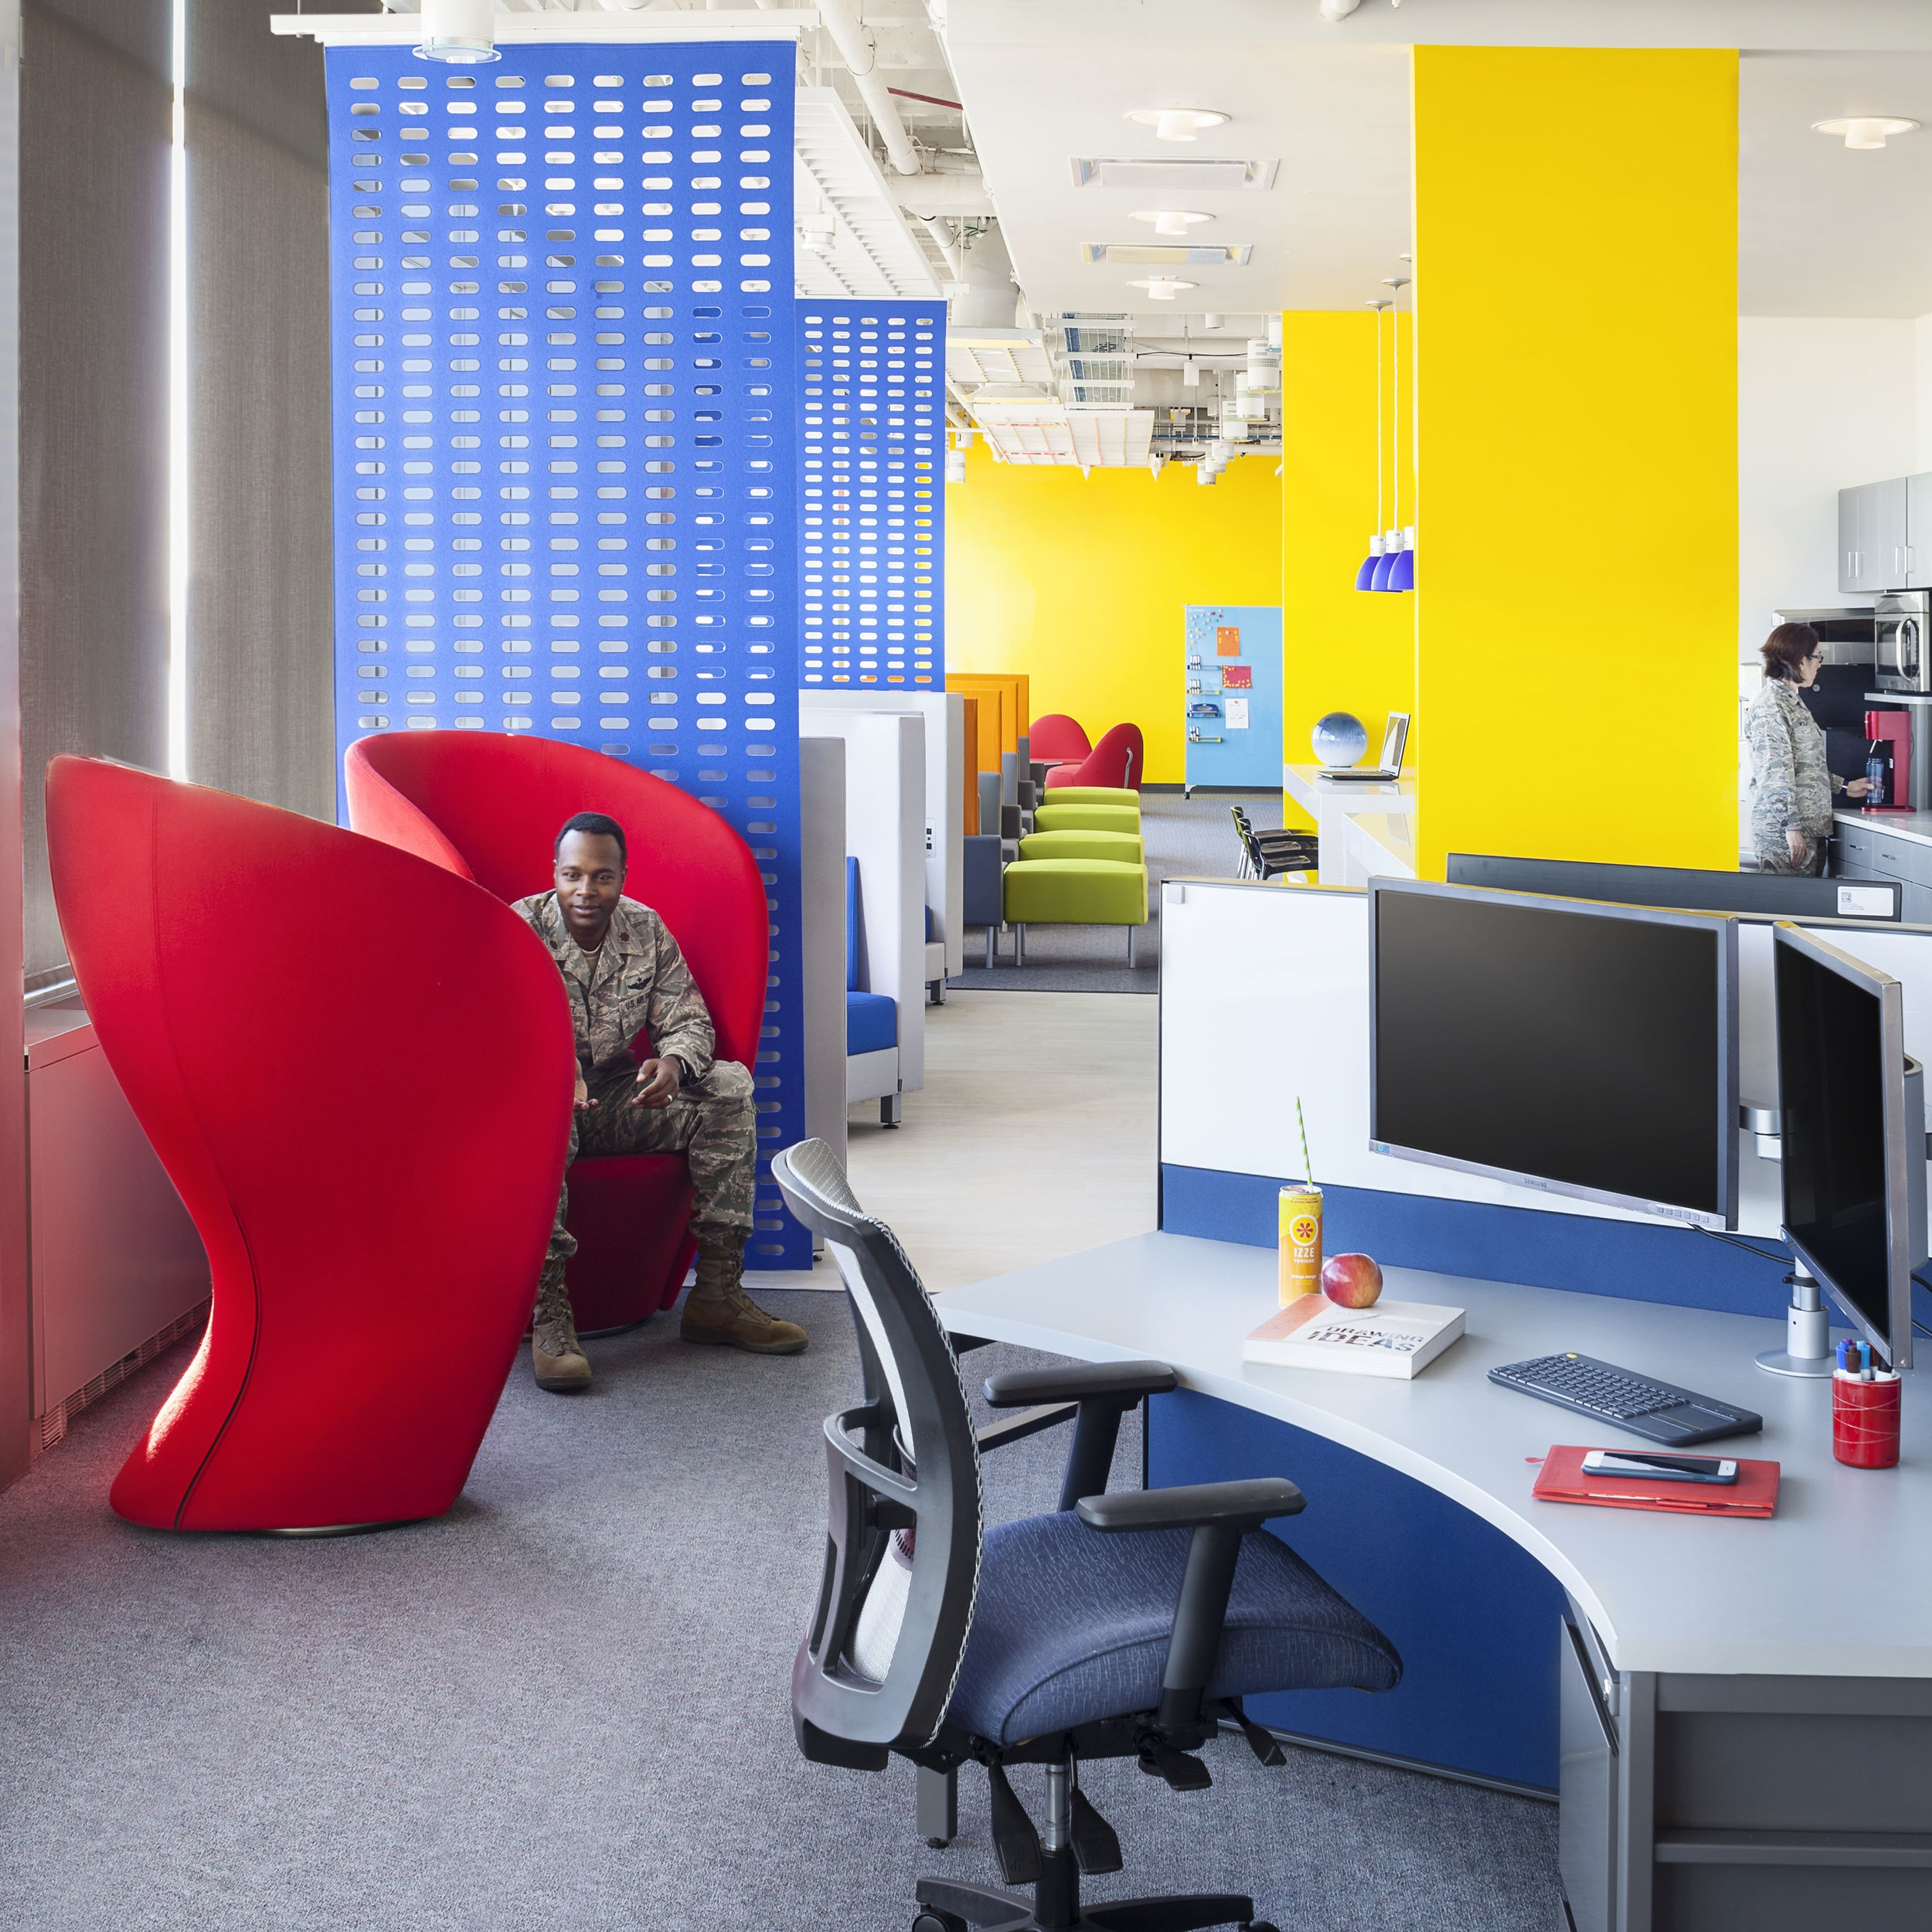 CYBERWORX COLLABORATIVE SPACE - United States Air Force Base, CO